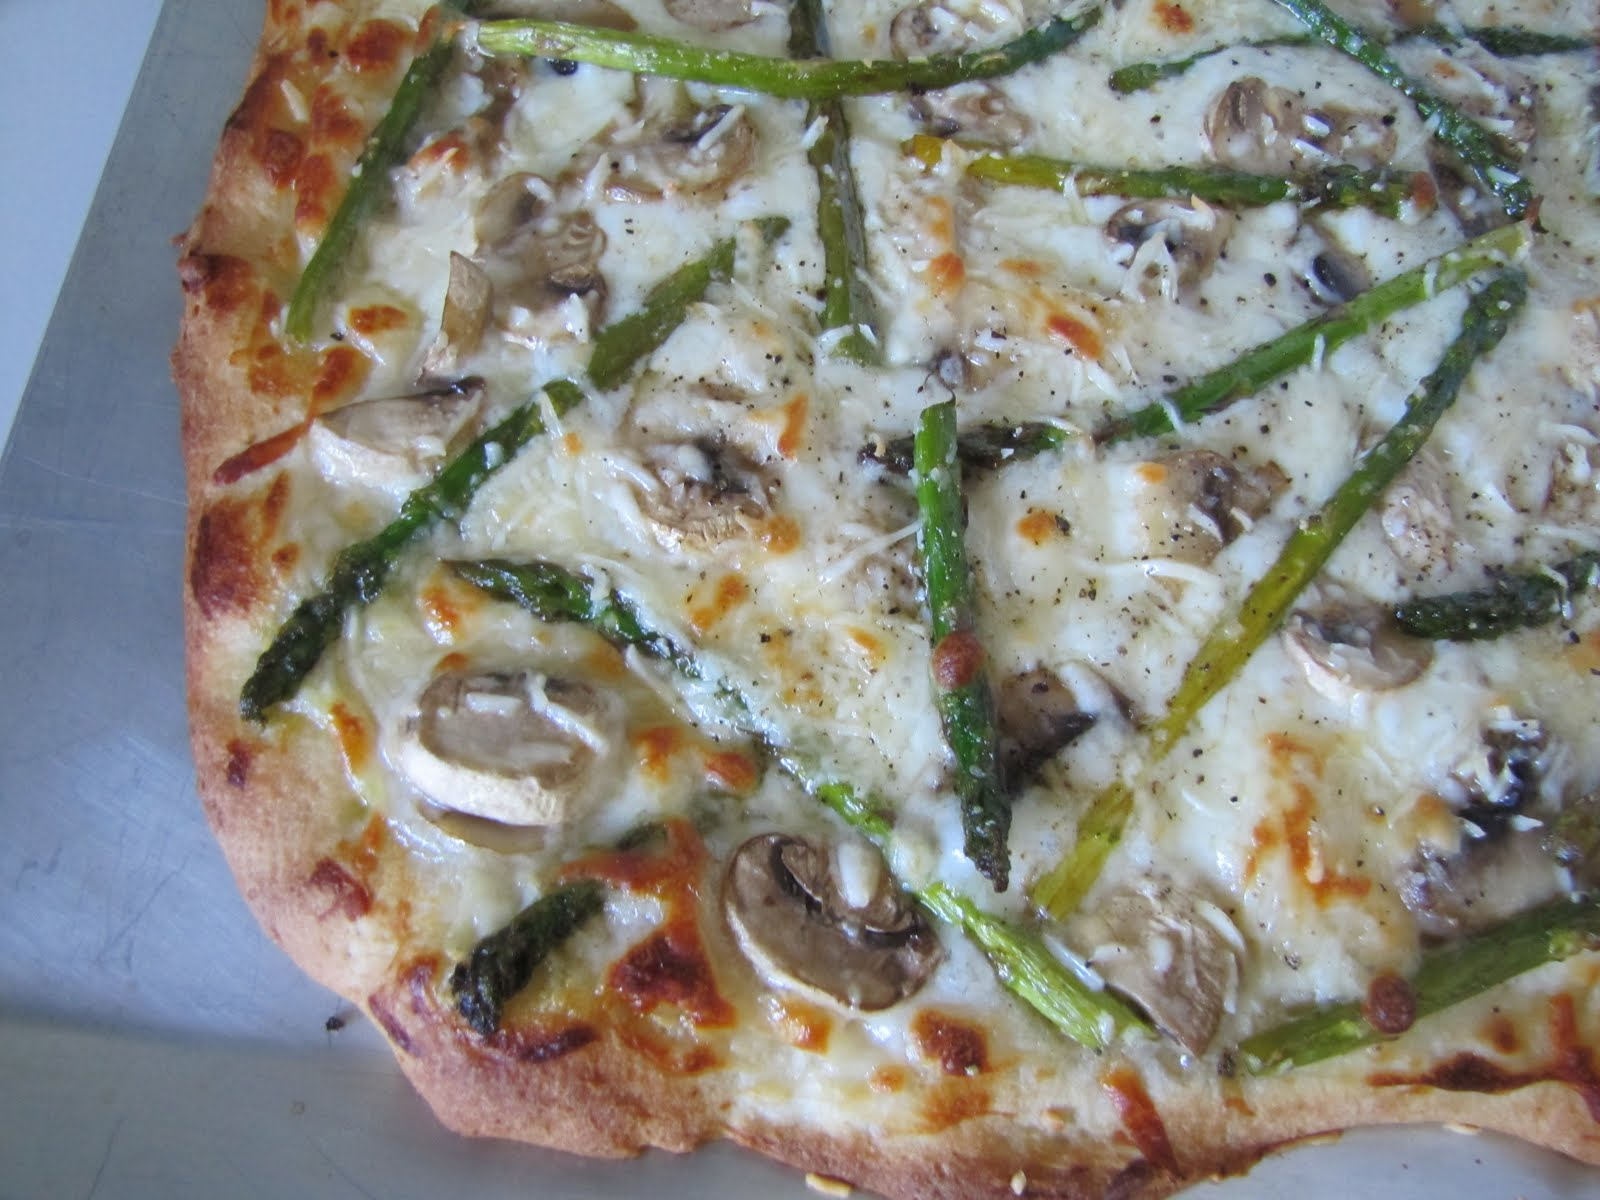 Adventures in Food: White Pizza with Asparagus and Mushrooms